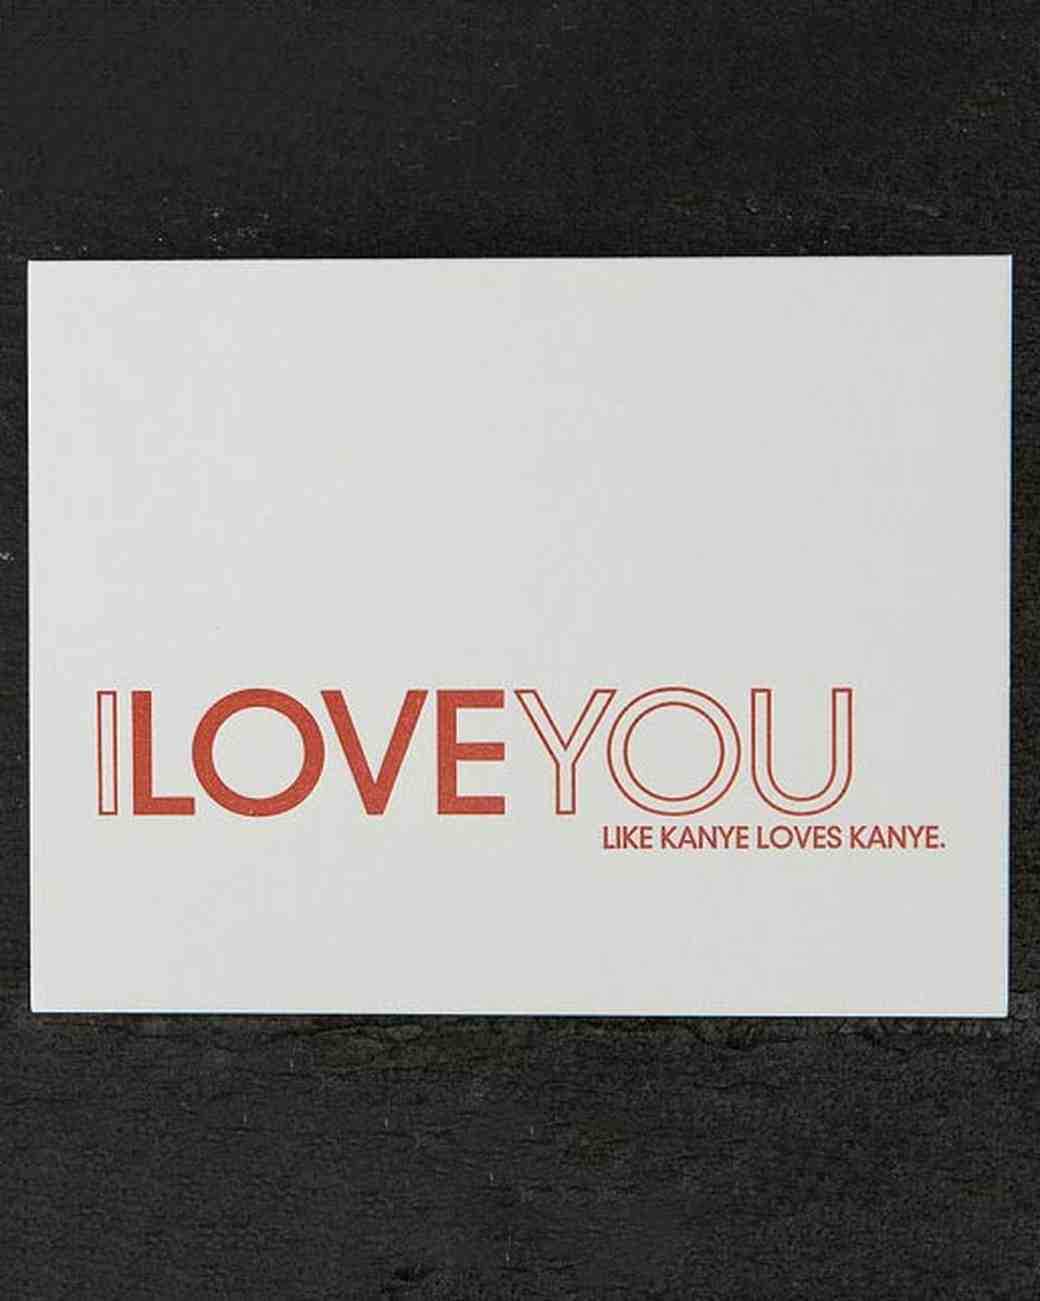 vday-cards-we-love-sapling-press-love-you-like-kim-loves-kanye-0216.jpg